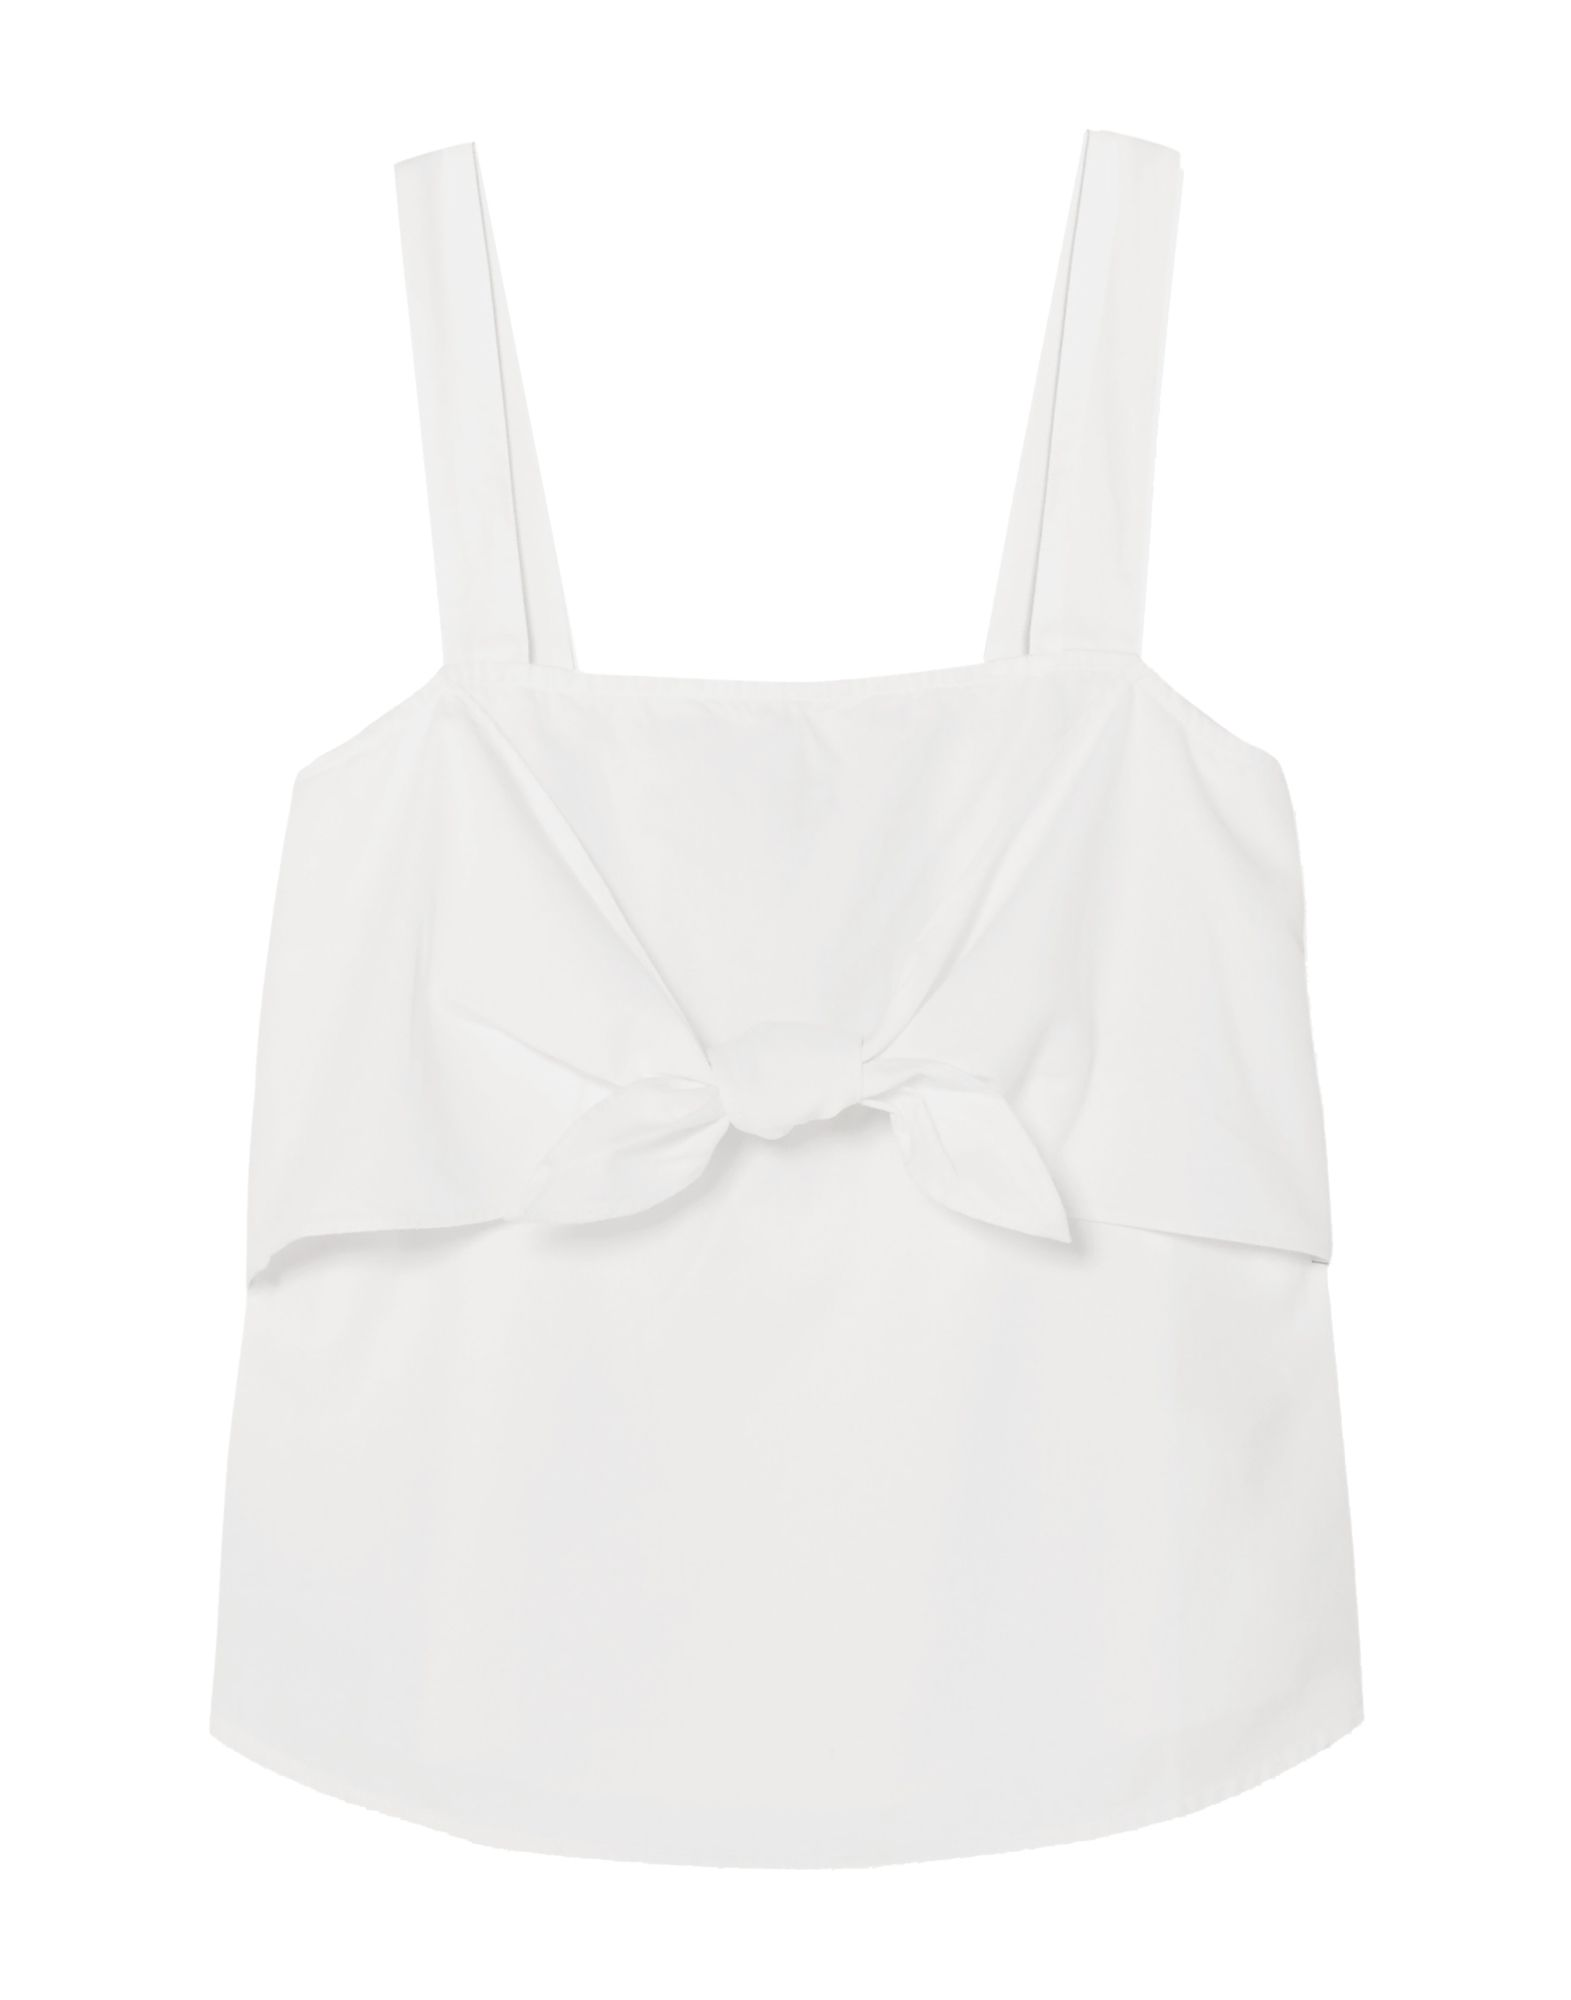 MADEWELL Tops. no appliqués, solid color, sleeveless, deep neckline. 60% Cotton, 40% Modal